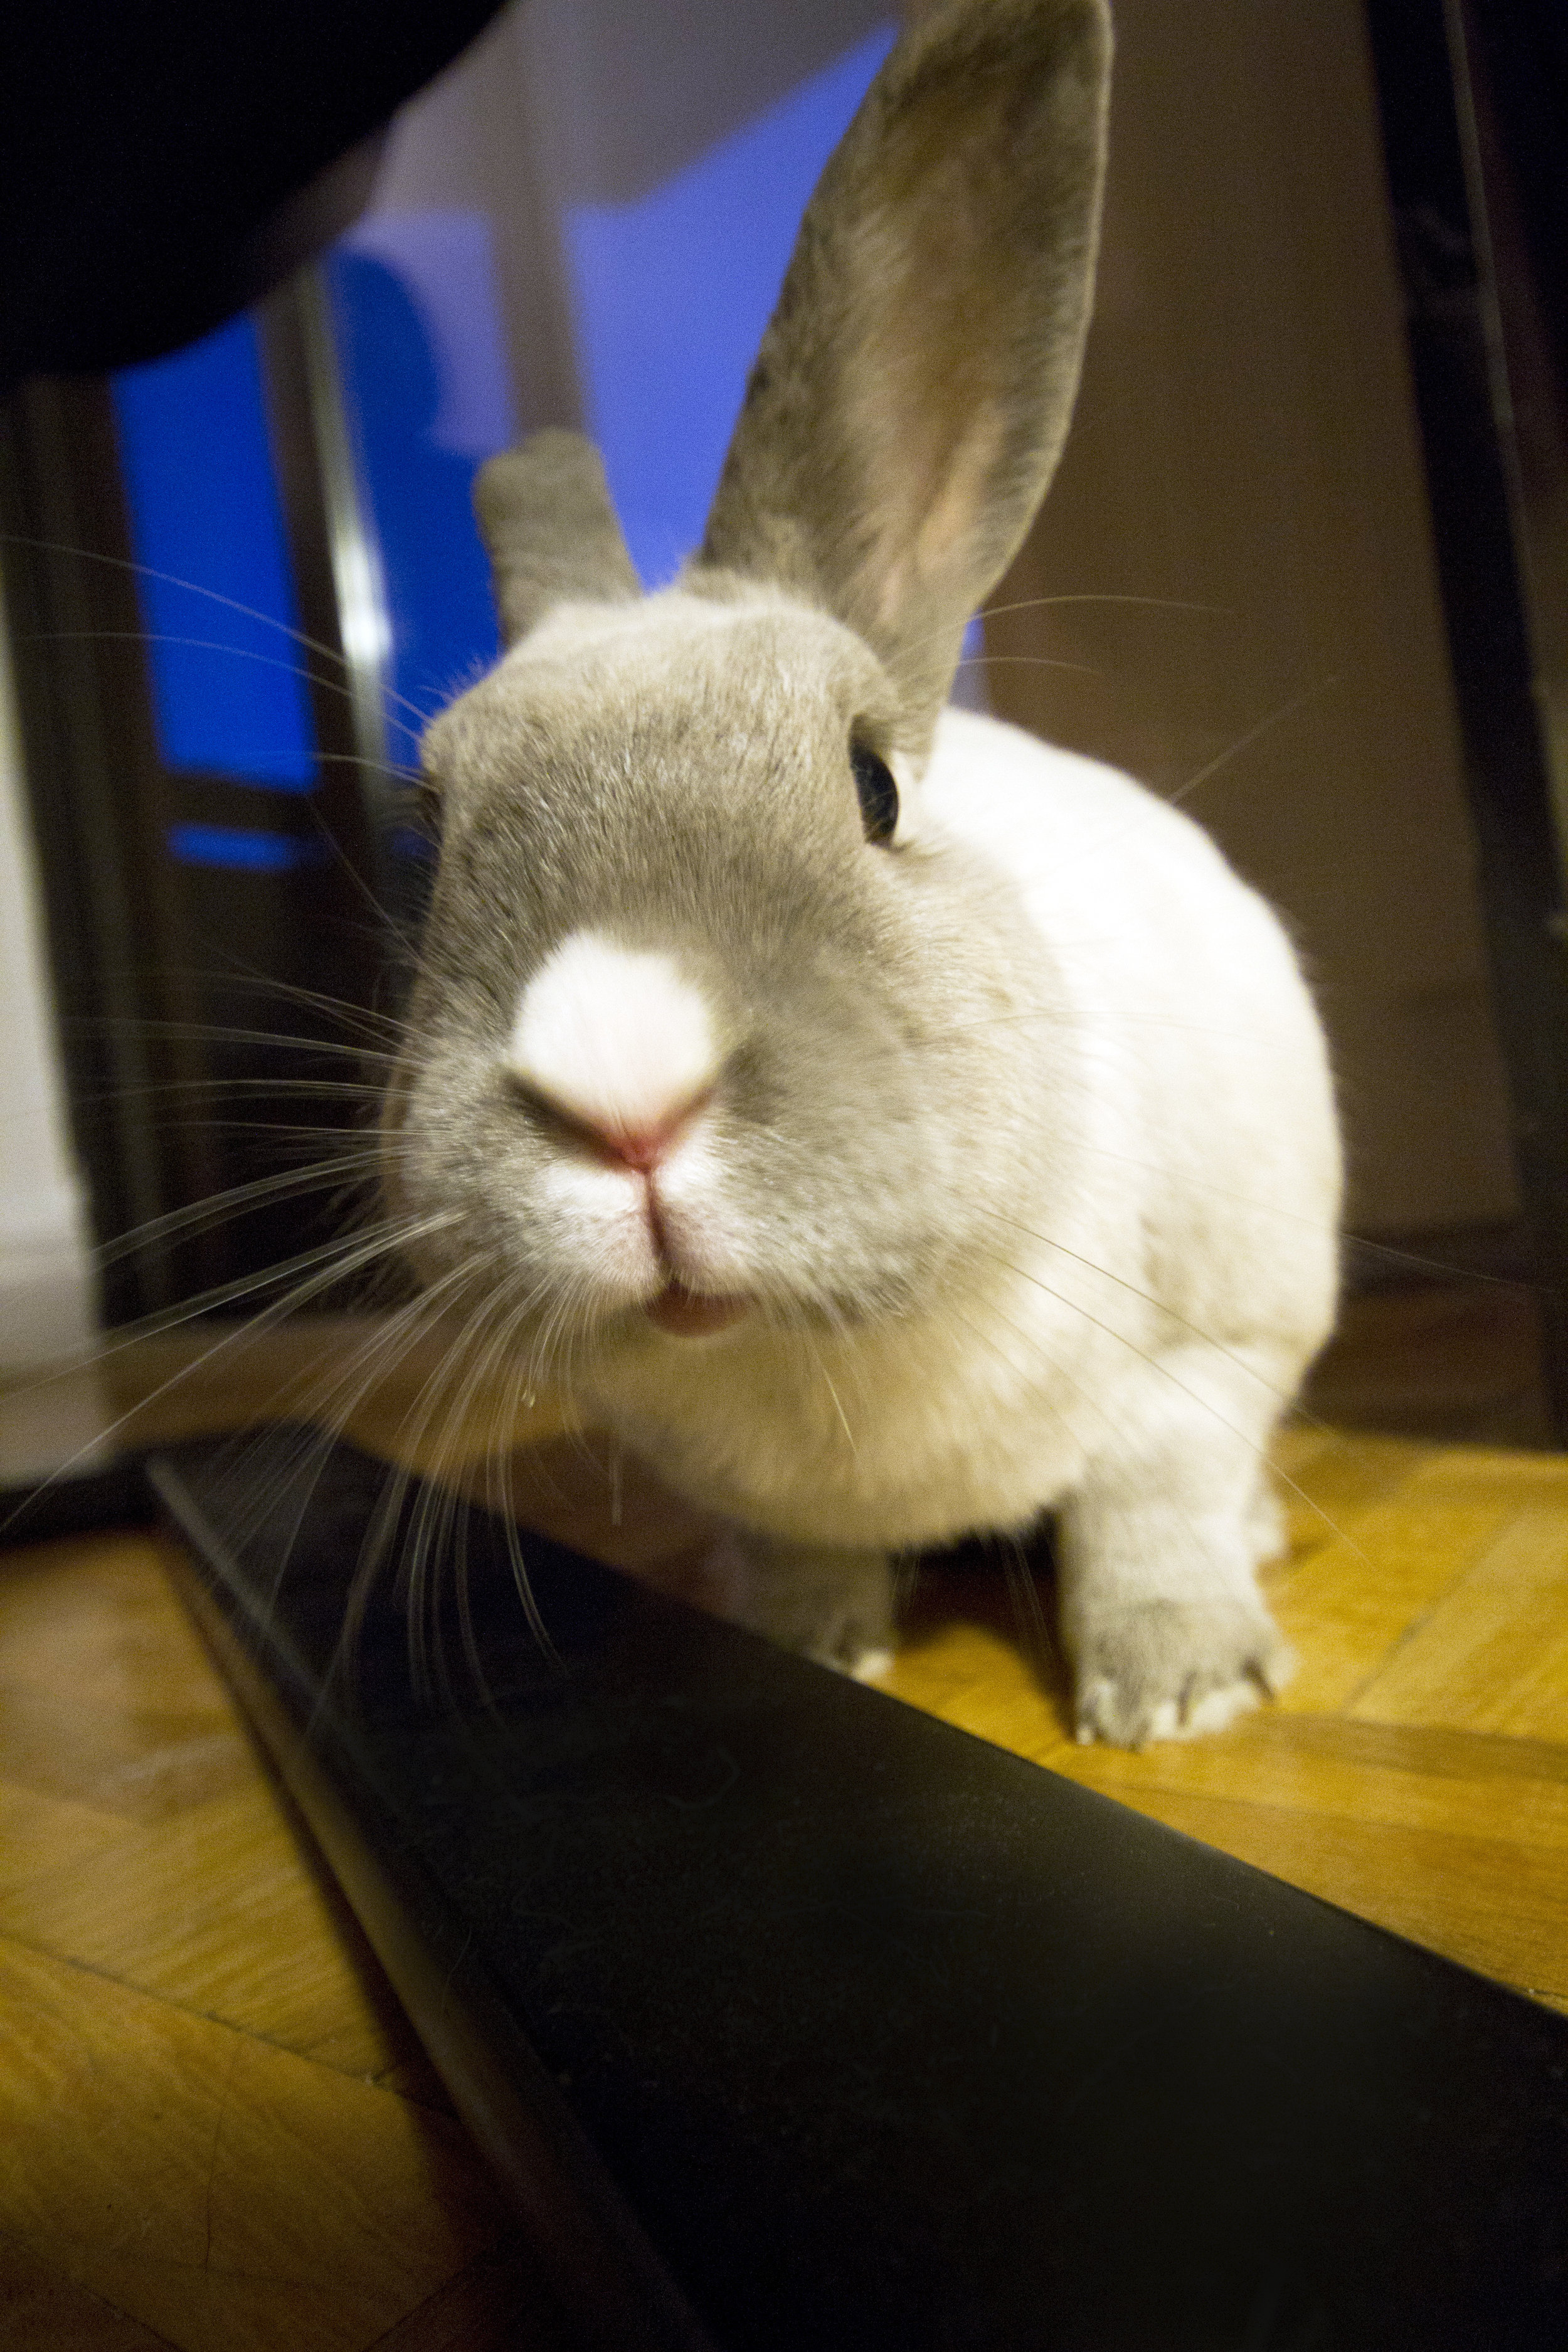 What Is That You Have There, Human? A Very Curious Thing Indeed!